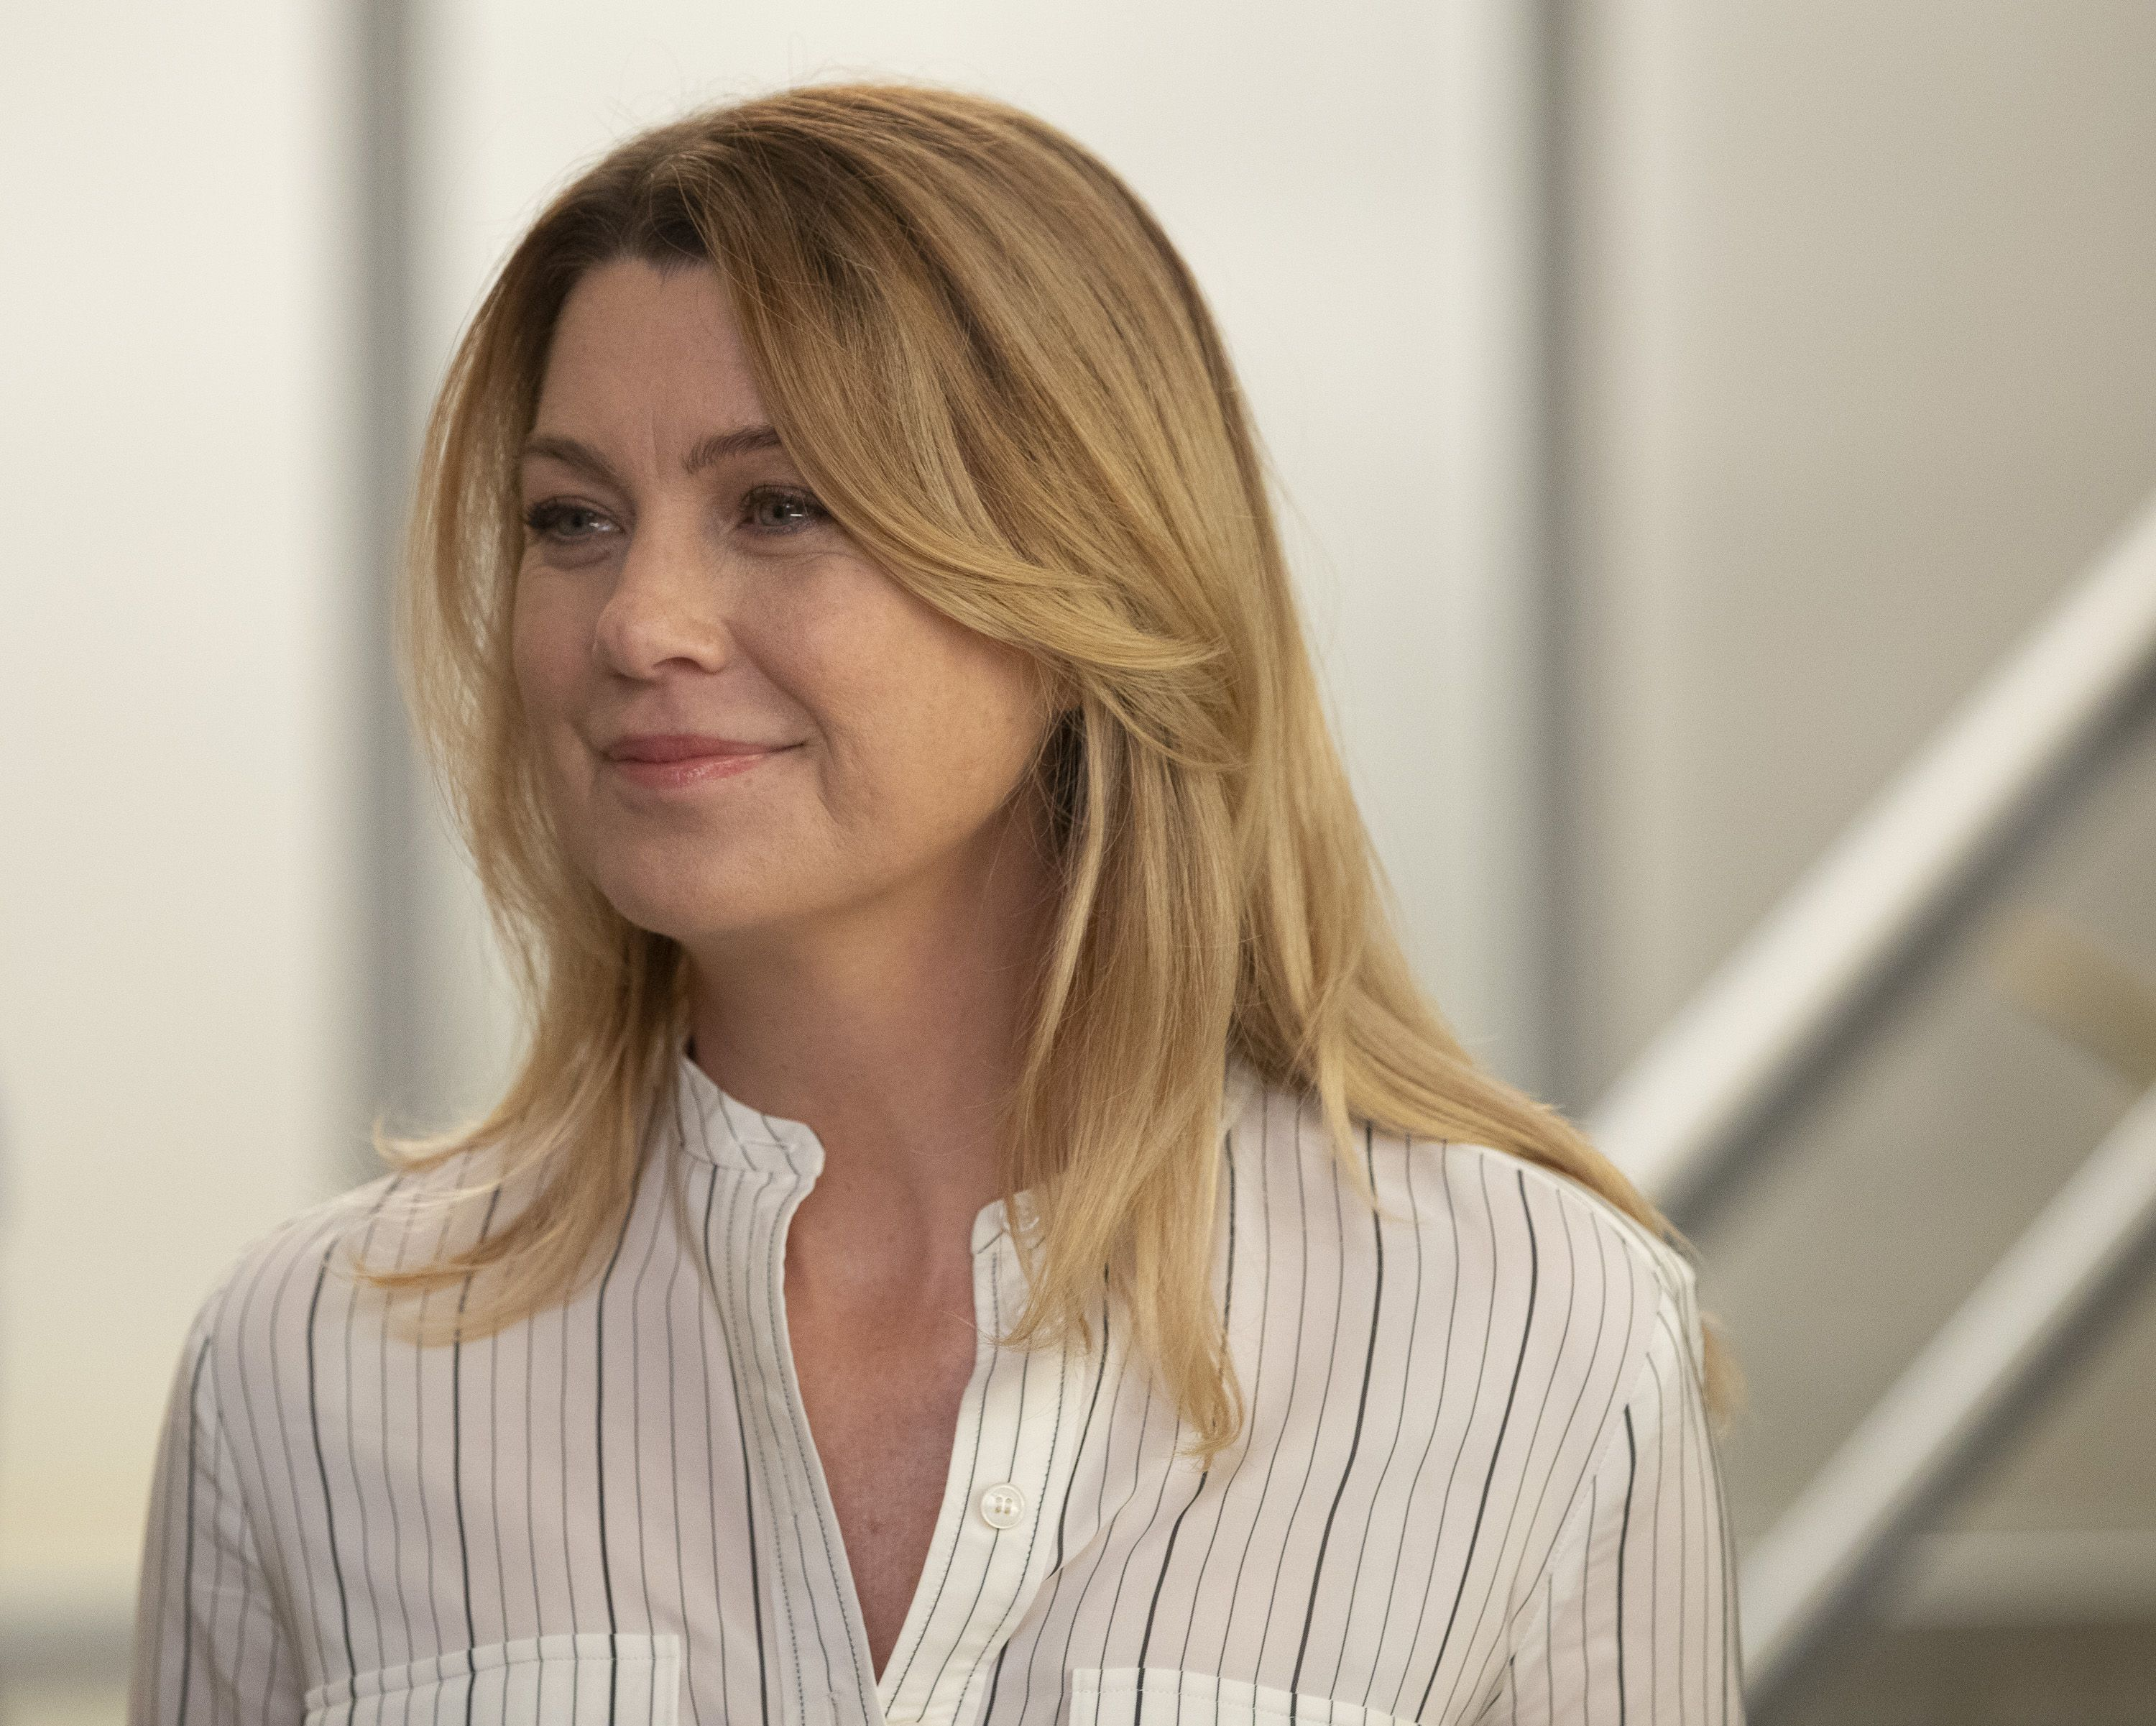 What We Know About 'Grey's Anatomy' Season 17 So Far